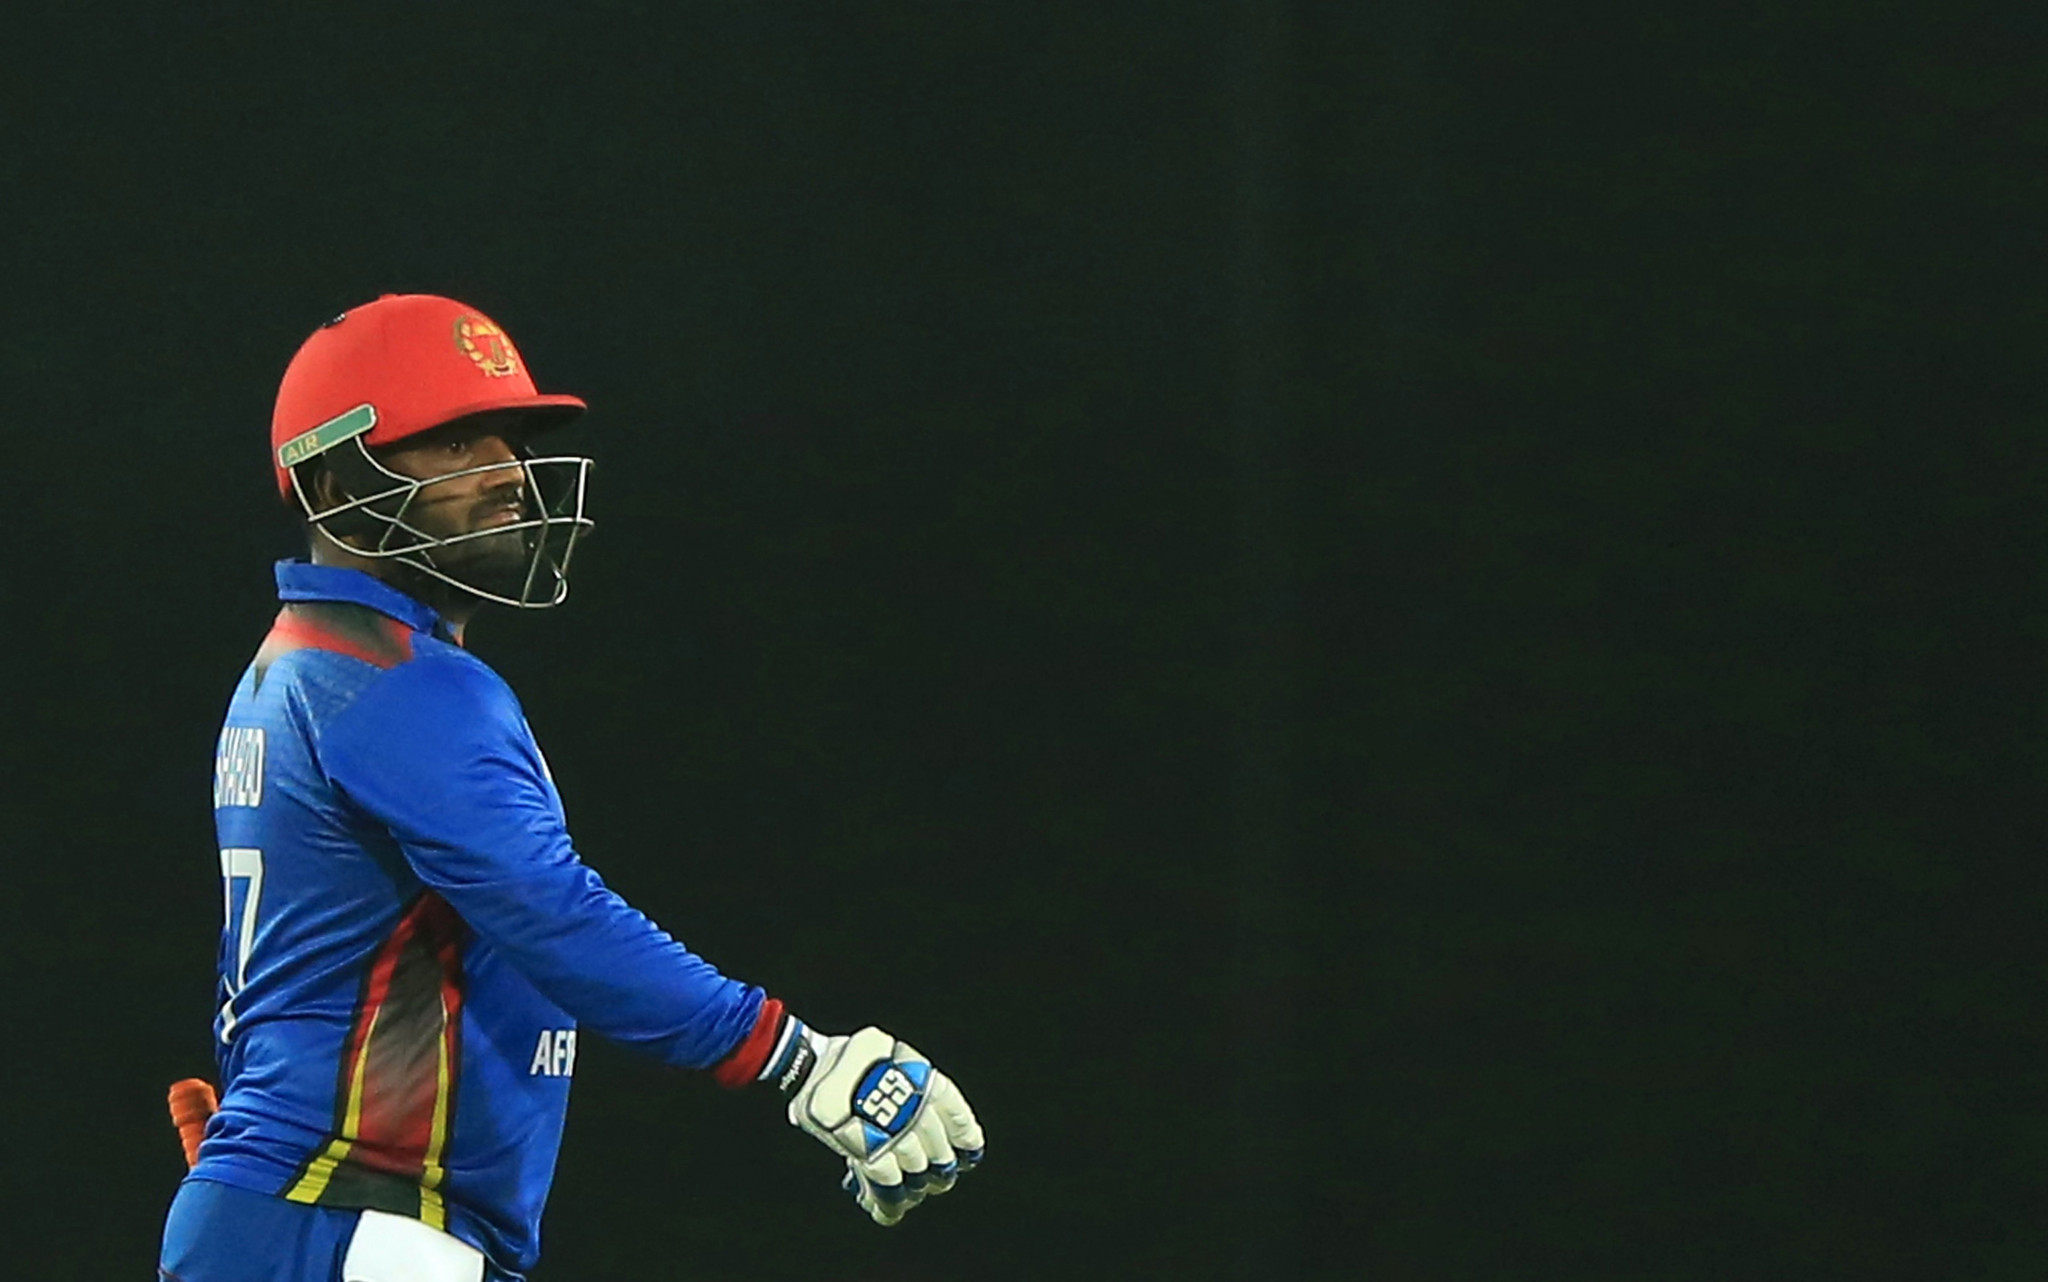 Afghanistan wicketkeeper Shahzad given one-year ban after failing drugs test